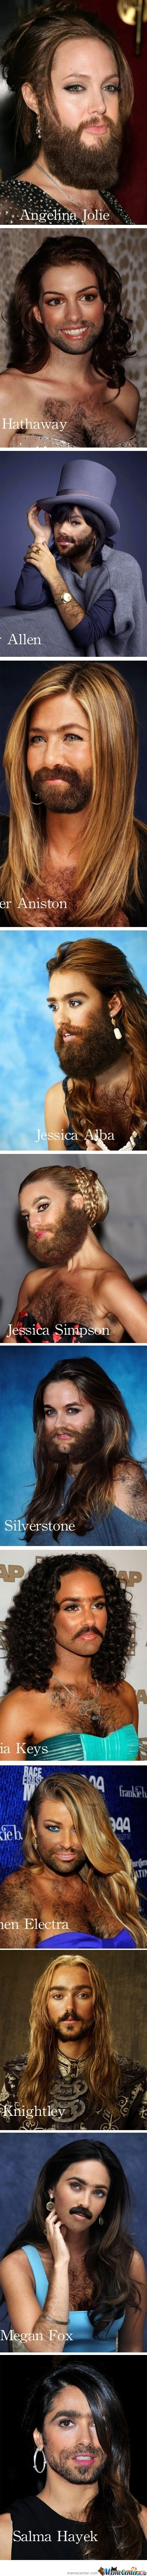 Imagine Your Favorite Celebrity With A Full-Faced Beard! There You Go...